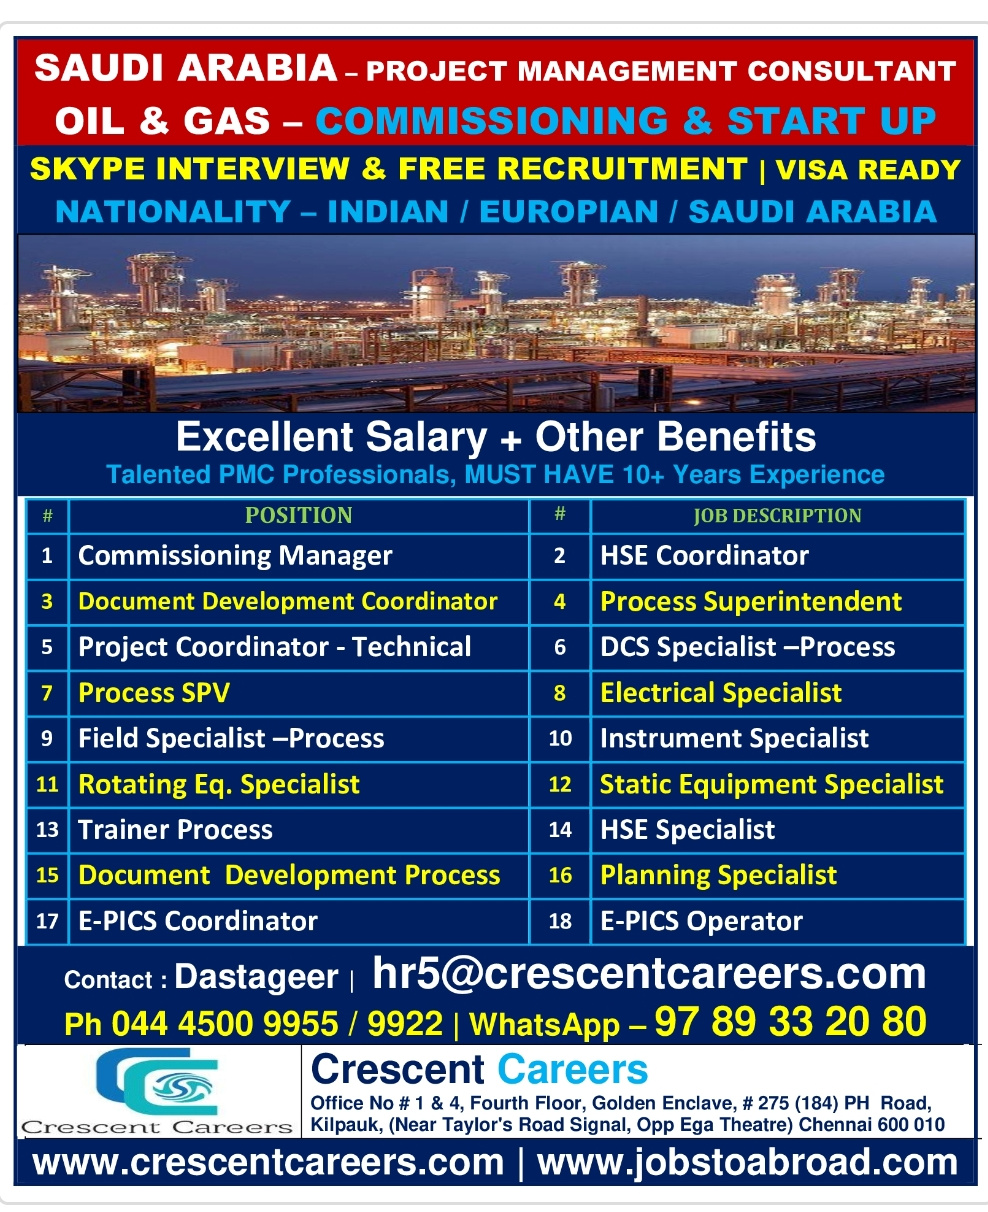 URGENTLY REQUIRED FOR PROJECT MANAGEMENT CONSULTANT IN SAUDI ARABIA